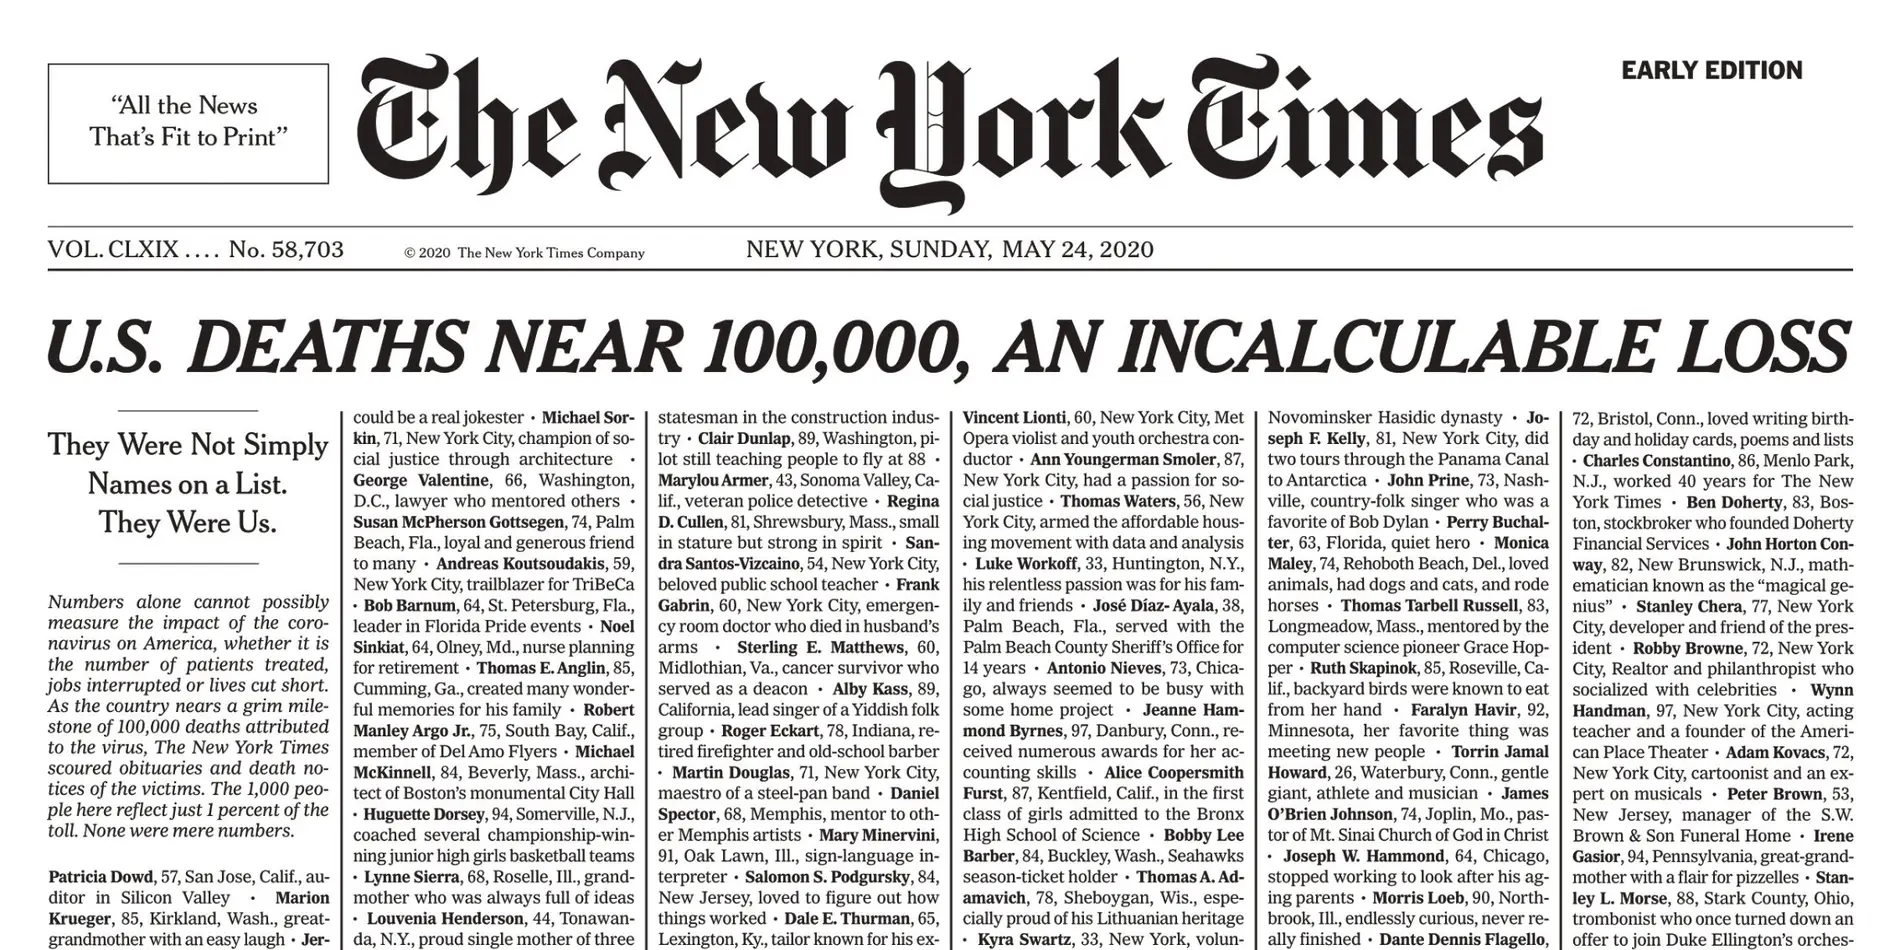 ny times front page reveals heart breaking name list of 1000 covid 19 deaths just 1 of us tally